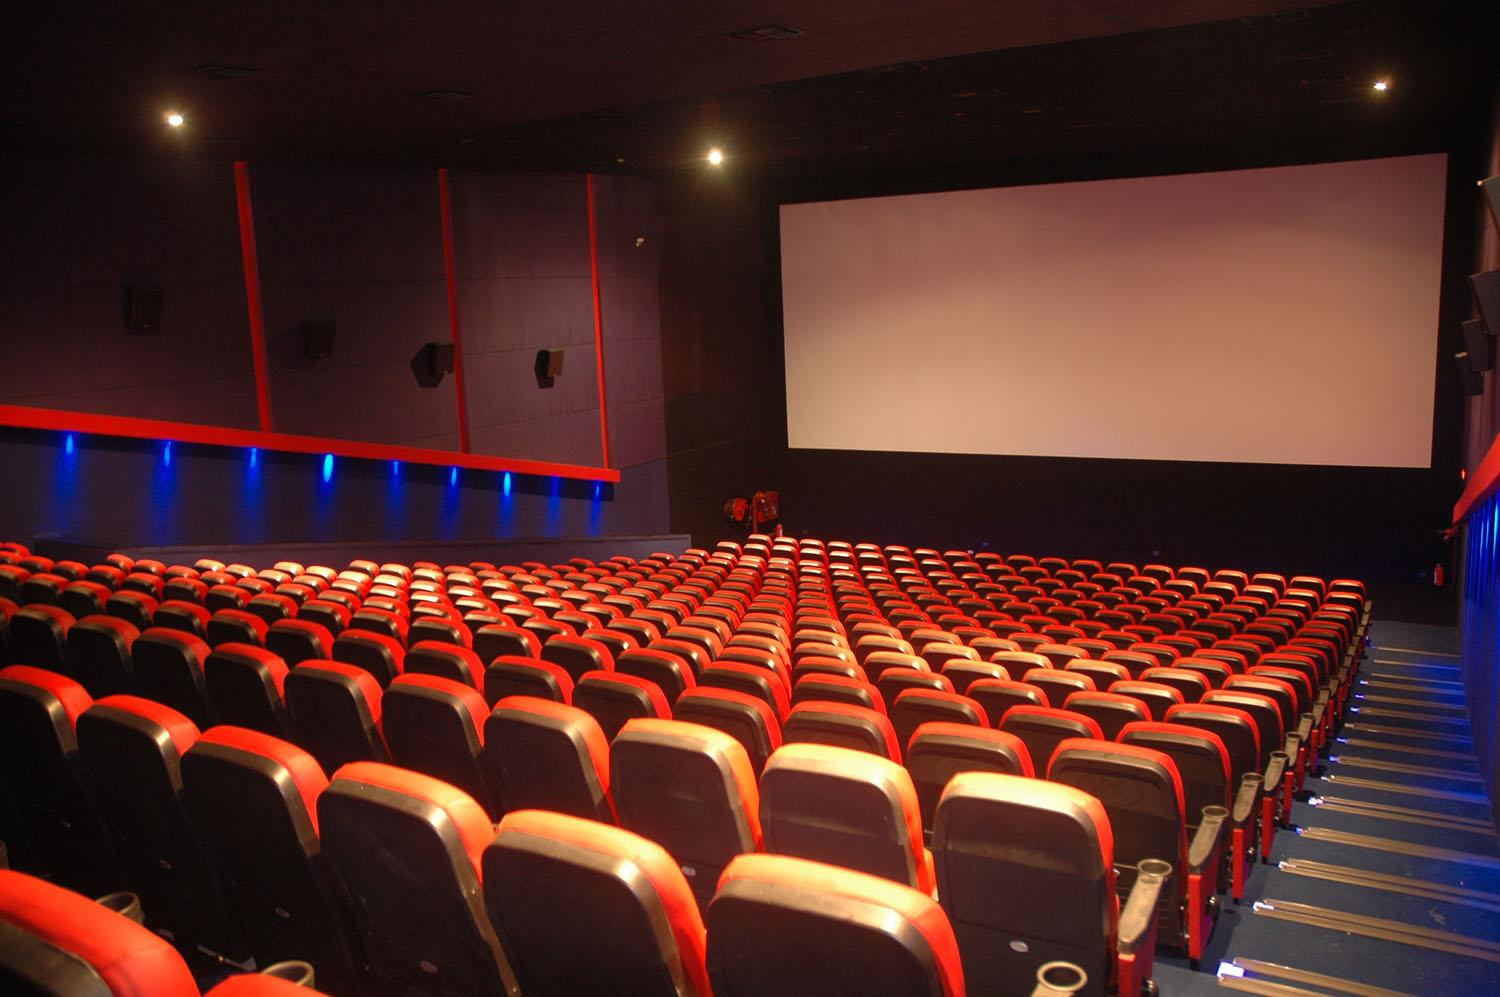 Box office portugu�s: n�meros de abril continuam a trazer m�s not�cias